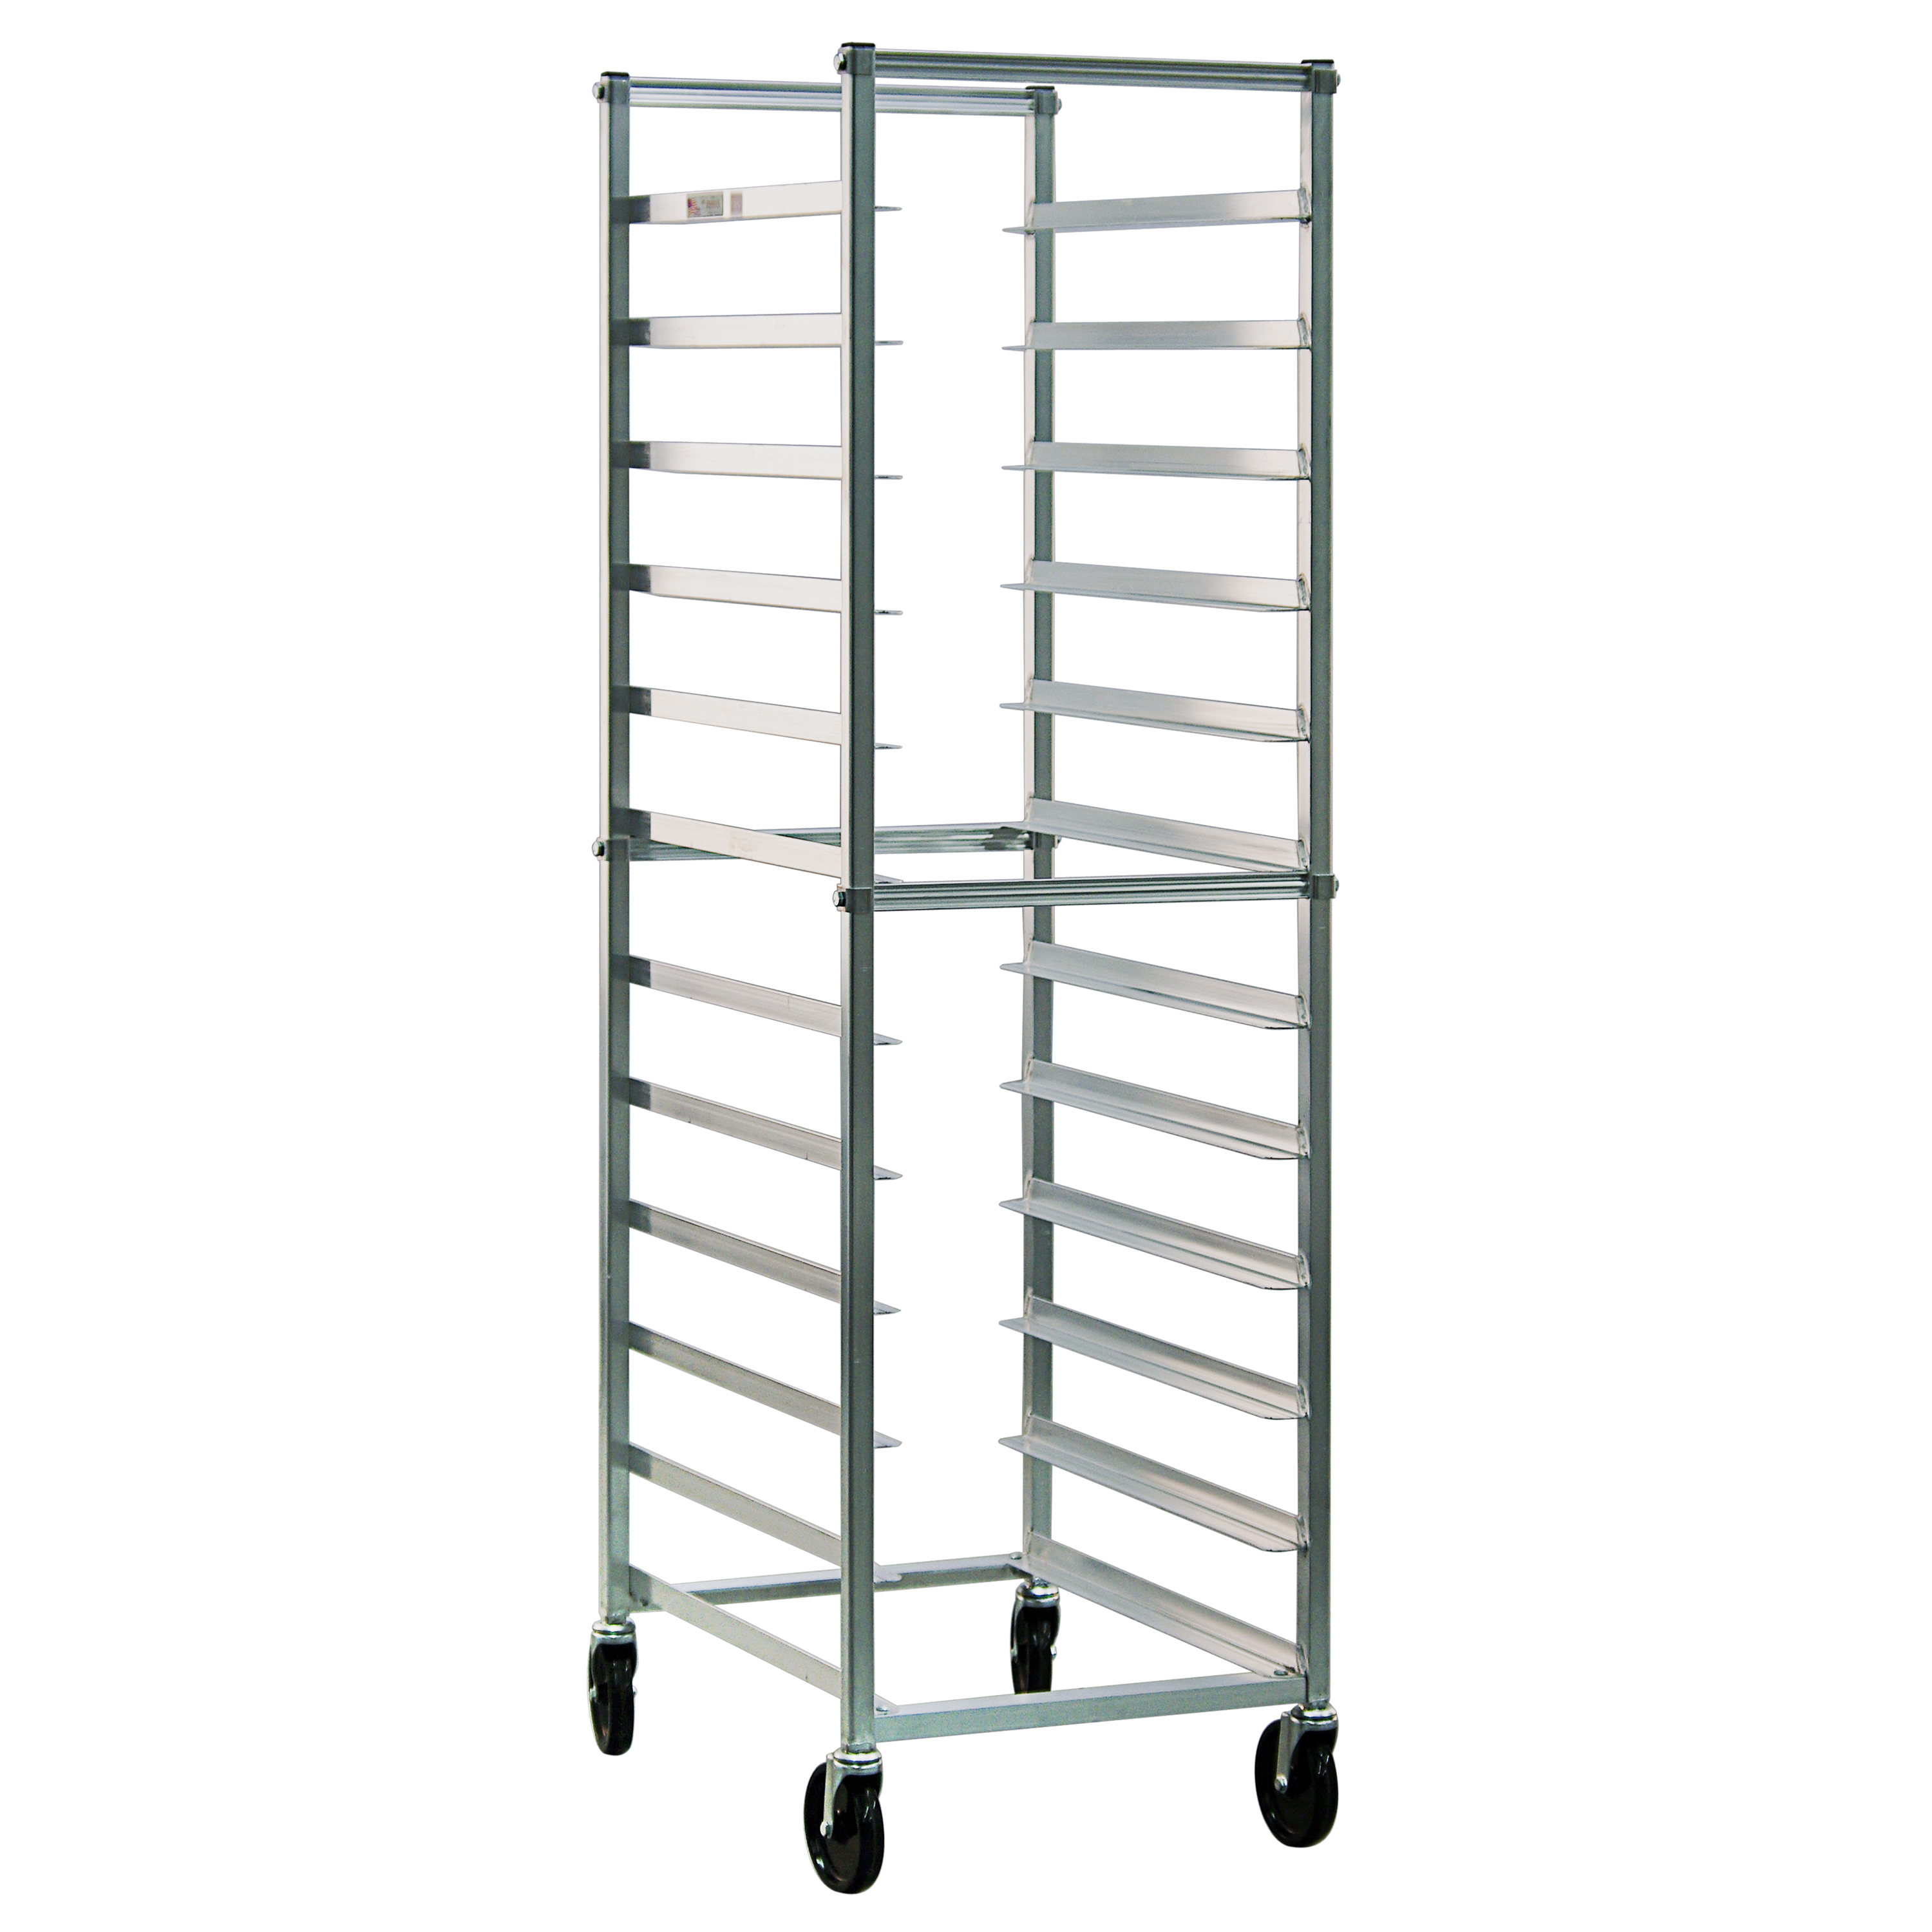 New Age Bun Pan Rack, Full Height, Open Sides, With Angle Guides On